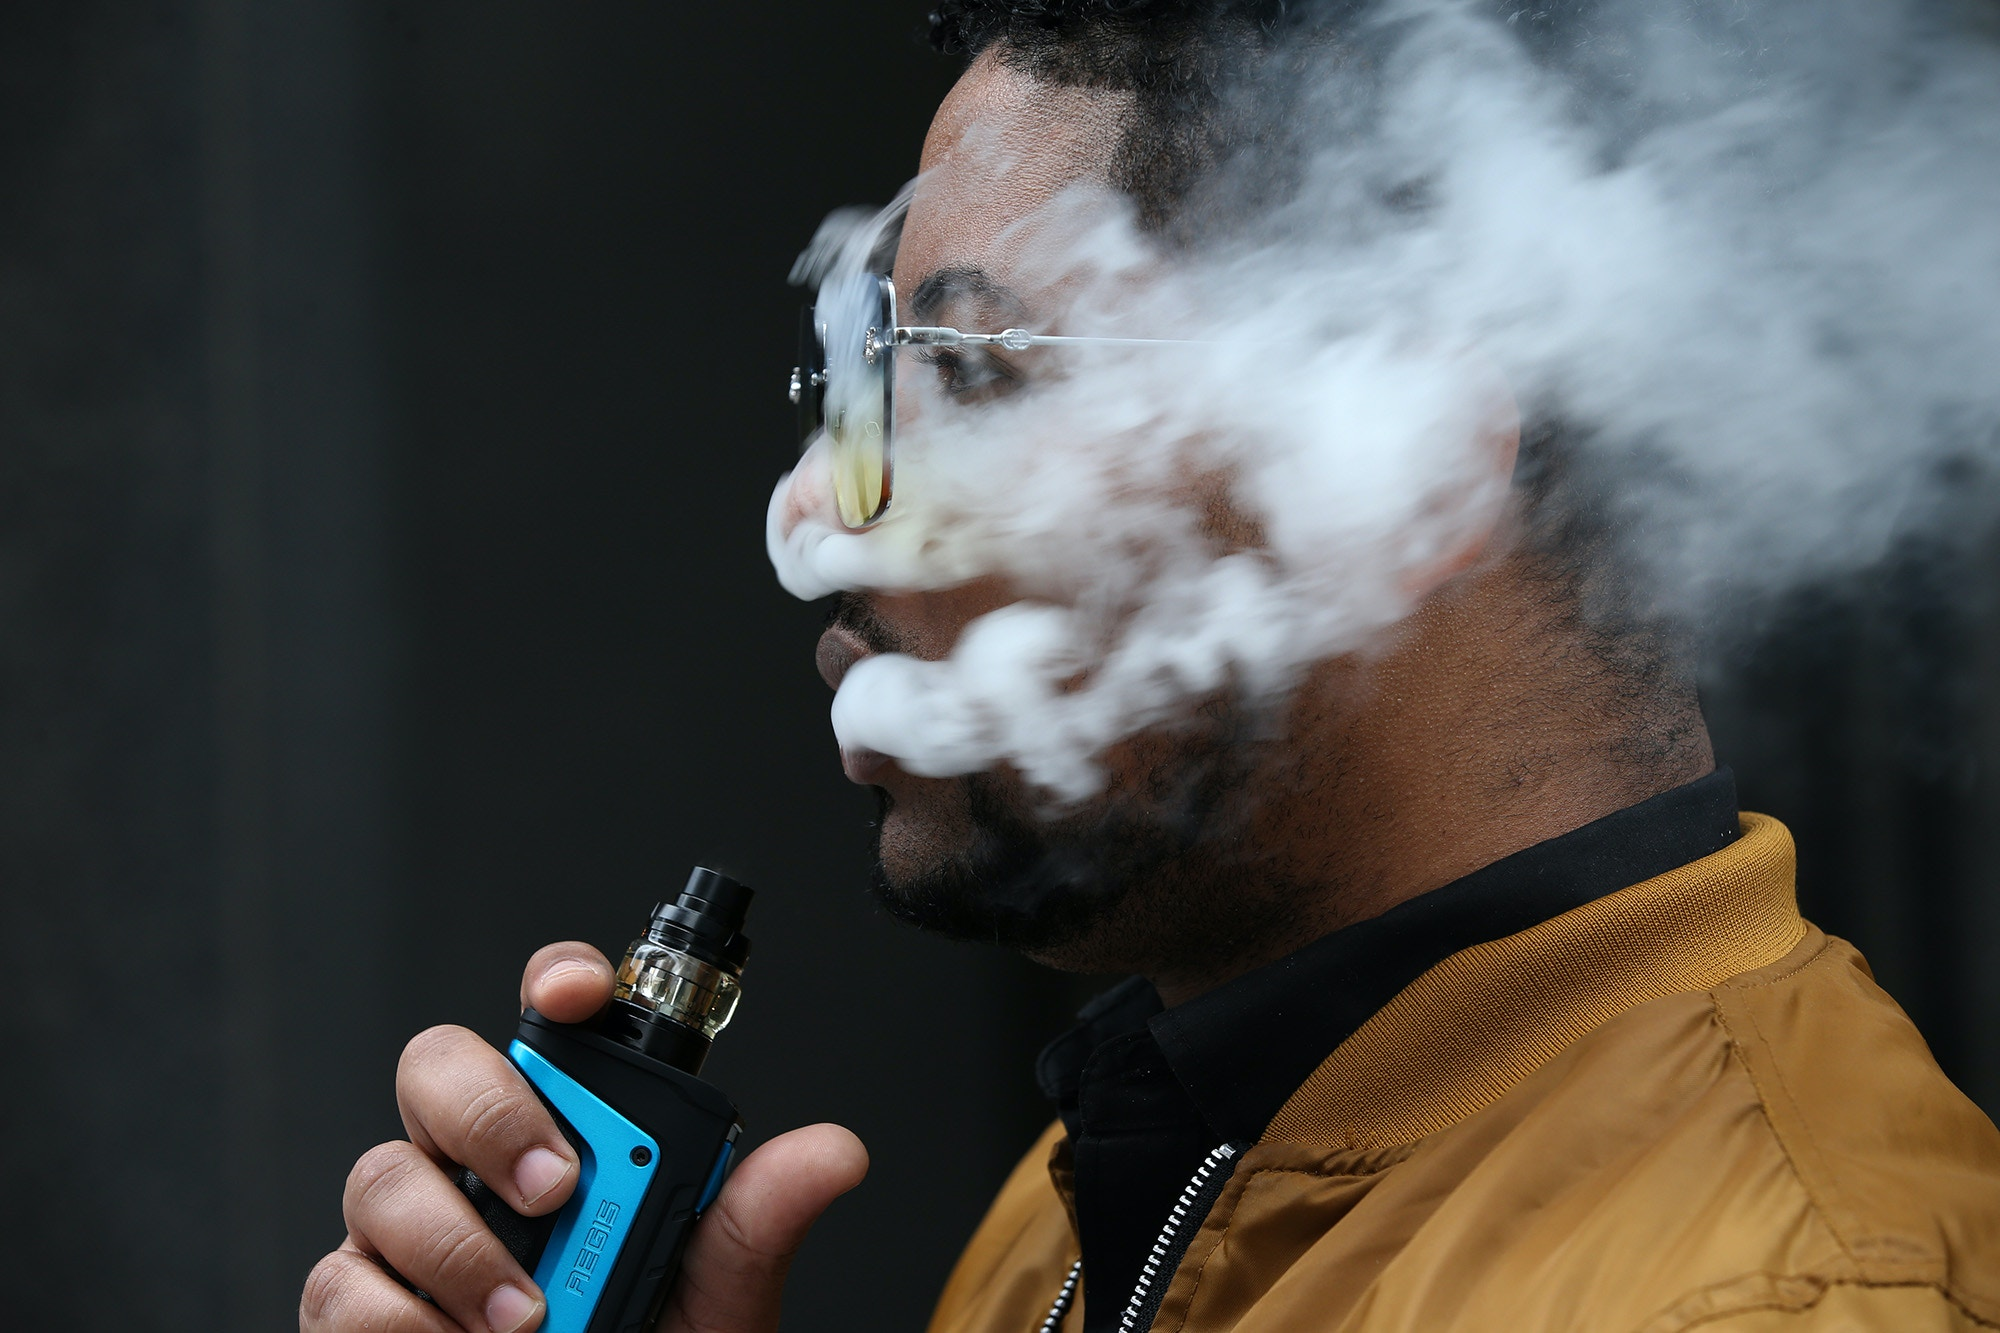 Frankie Paulino, of Chicago, uses his vaping device at Dearborn and Jackson in Chicago, Monday, Sept. 16, 2019. Paulino believes excessive vaping is bad and prefers the mint flavor. (Antonio Perez/Chicago Tribune/Tribune News Service via Getty Images)